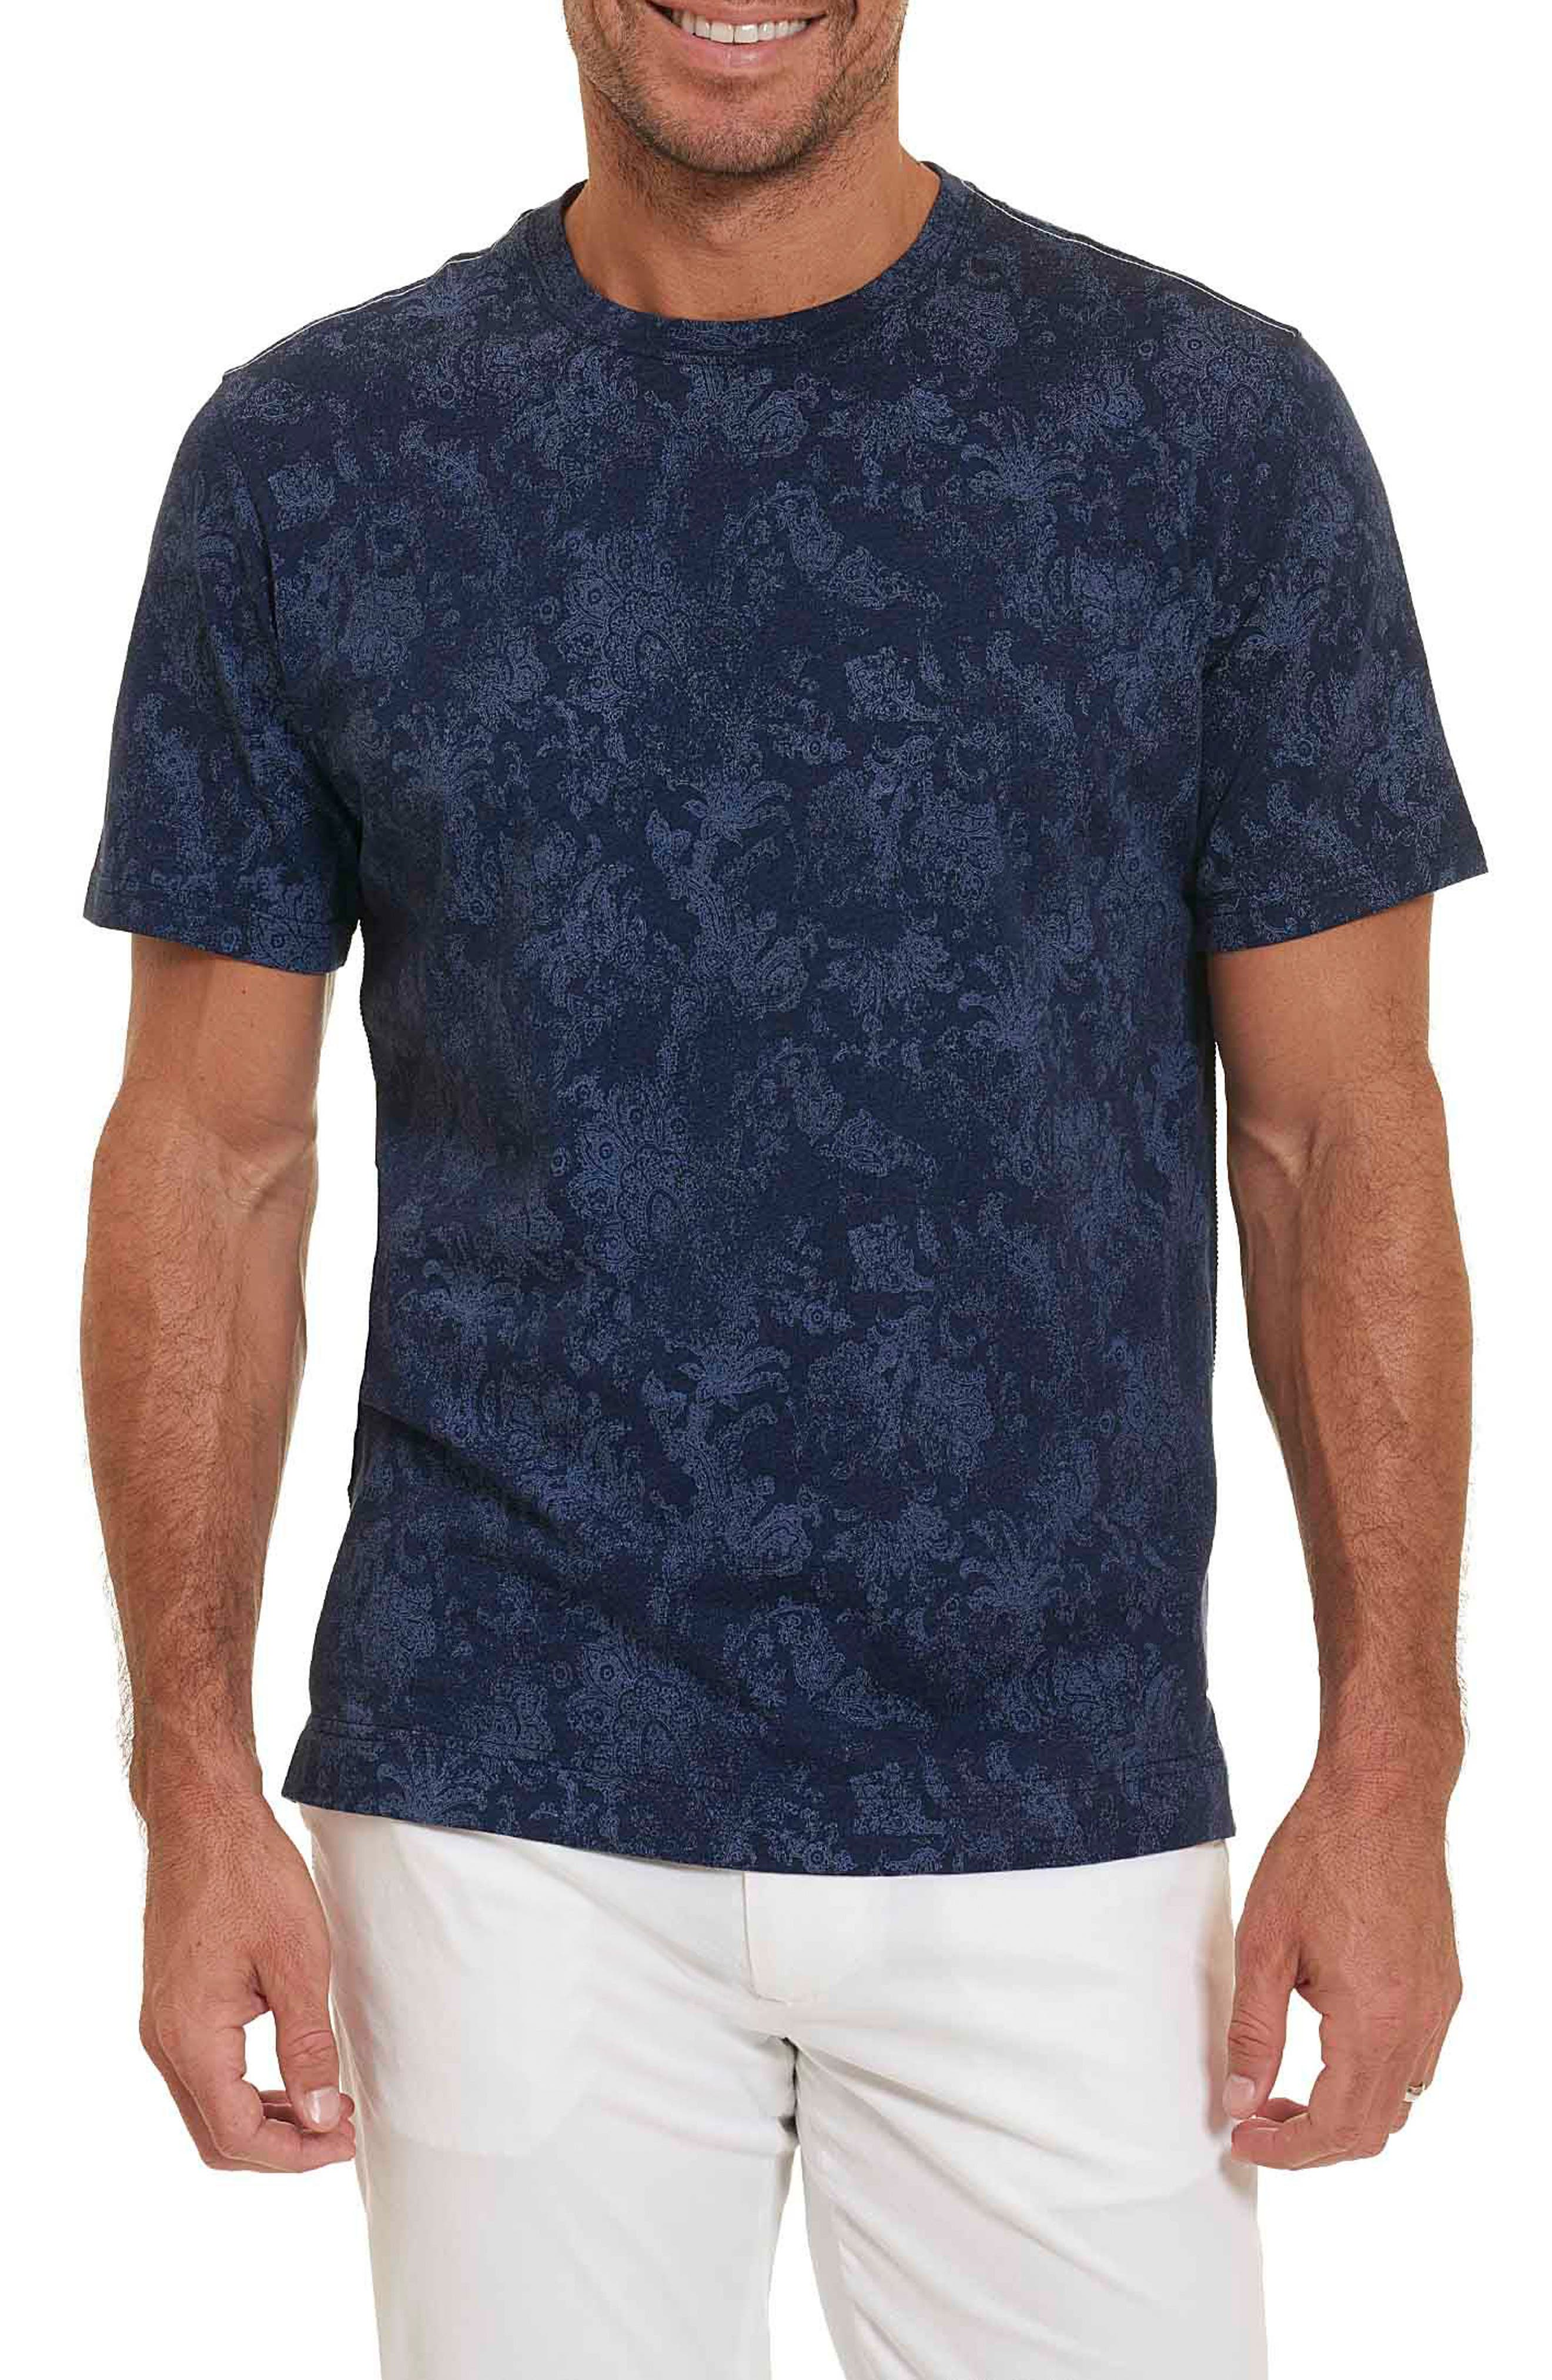 Alternate Image 1 Selected - Robert Graham Rosemead Print T-Shirt